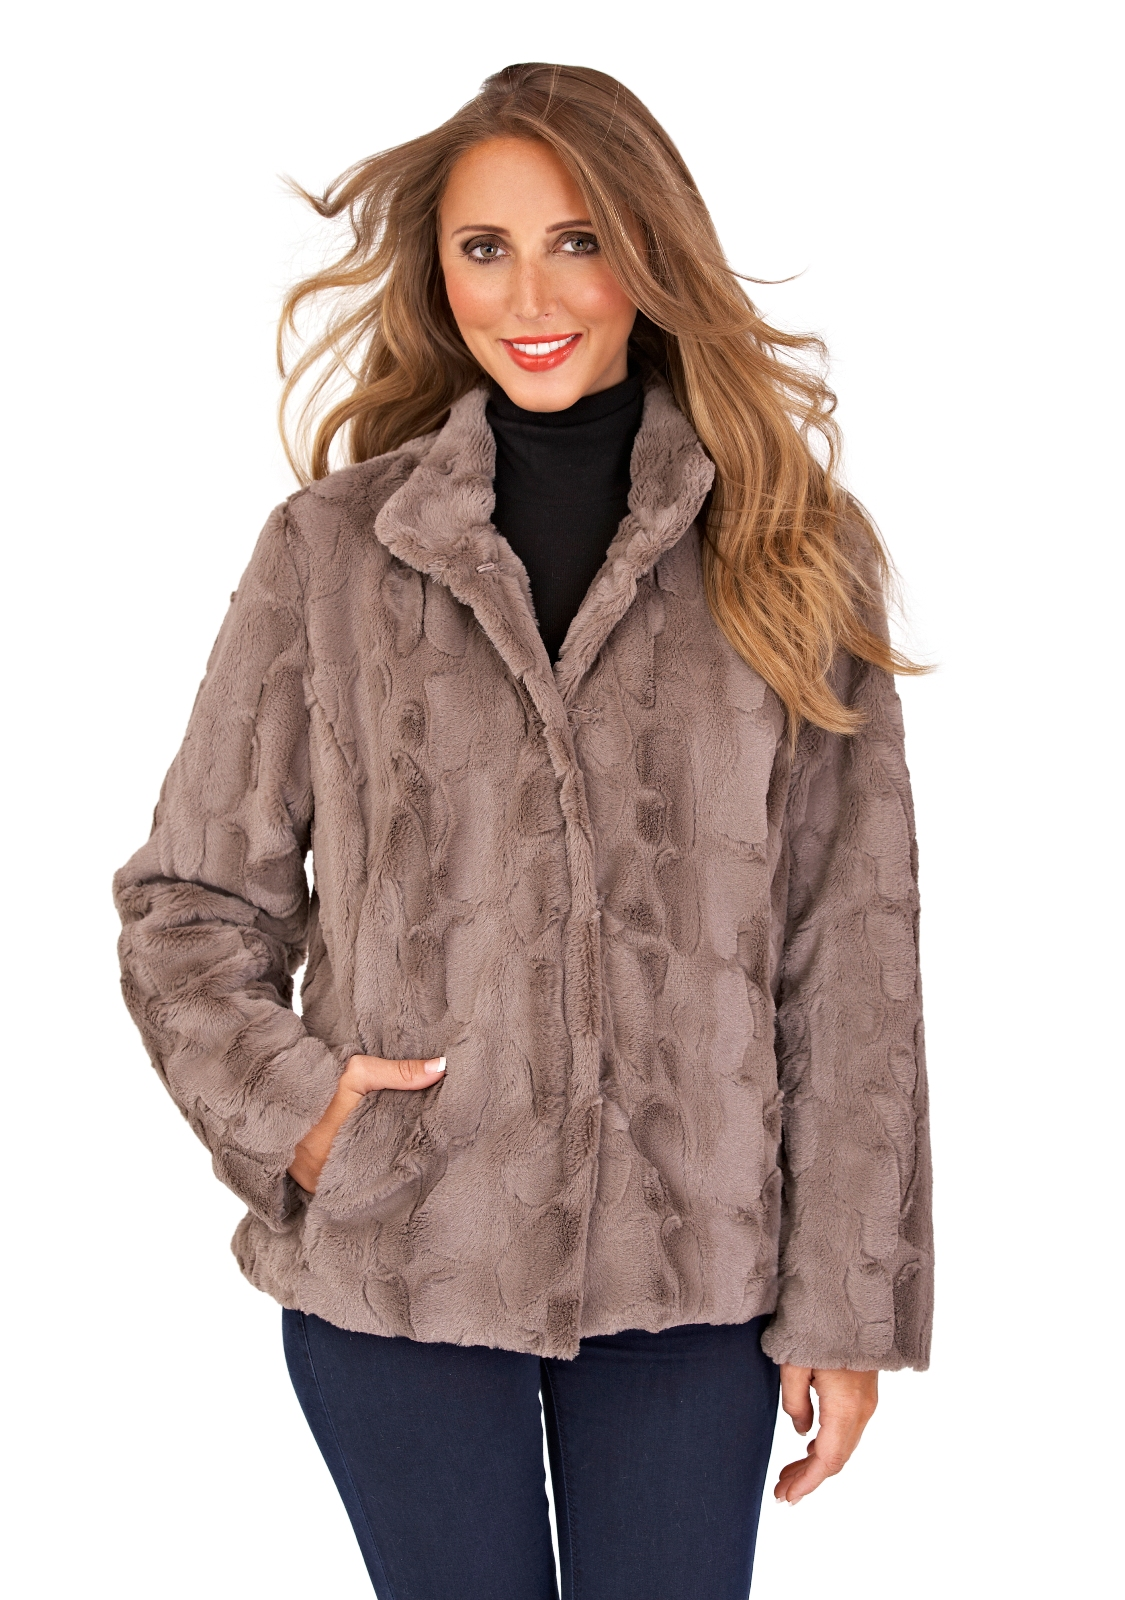 Womens Ladies Full Faux Fur Coat Short Mid Length Jacket Warm Winter Size 8-16 | EBay